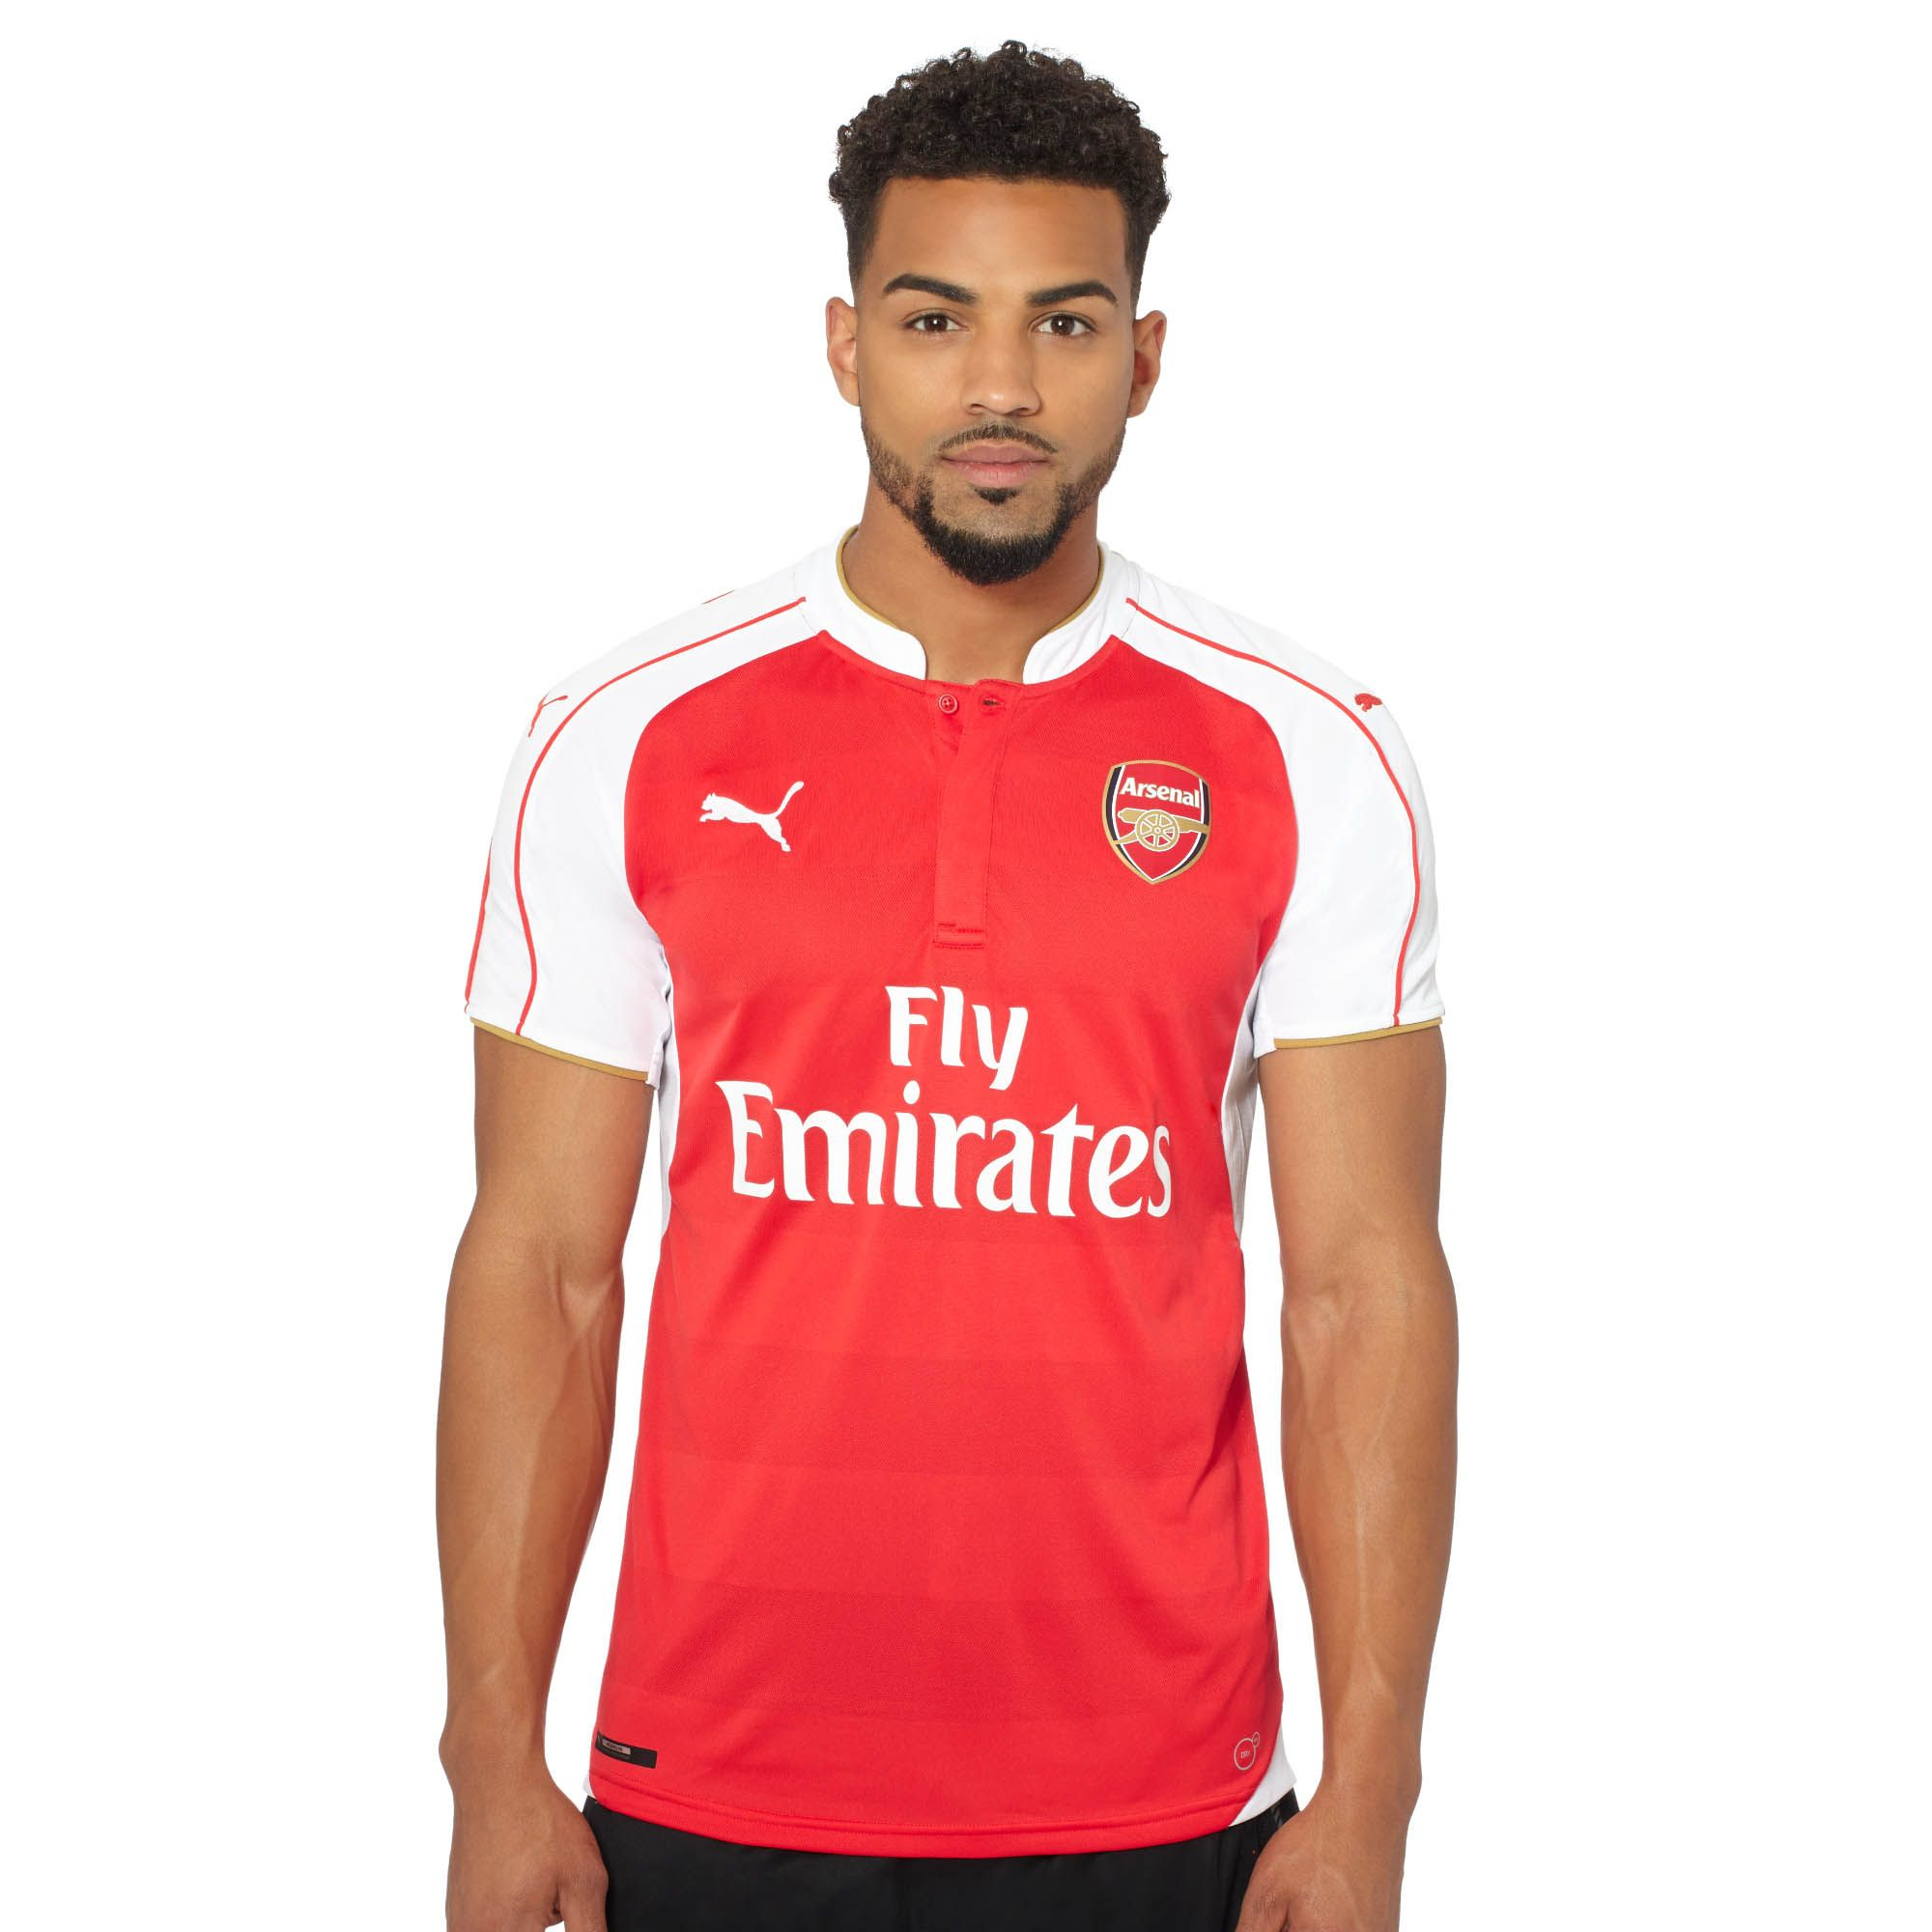 Image of 2015/16 Arsenal Home Replica Jersey